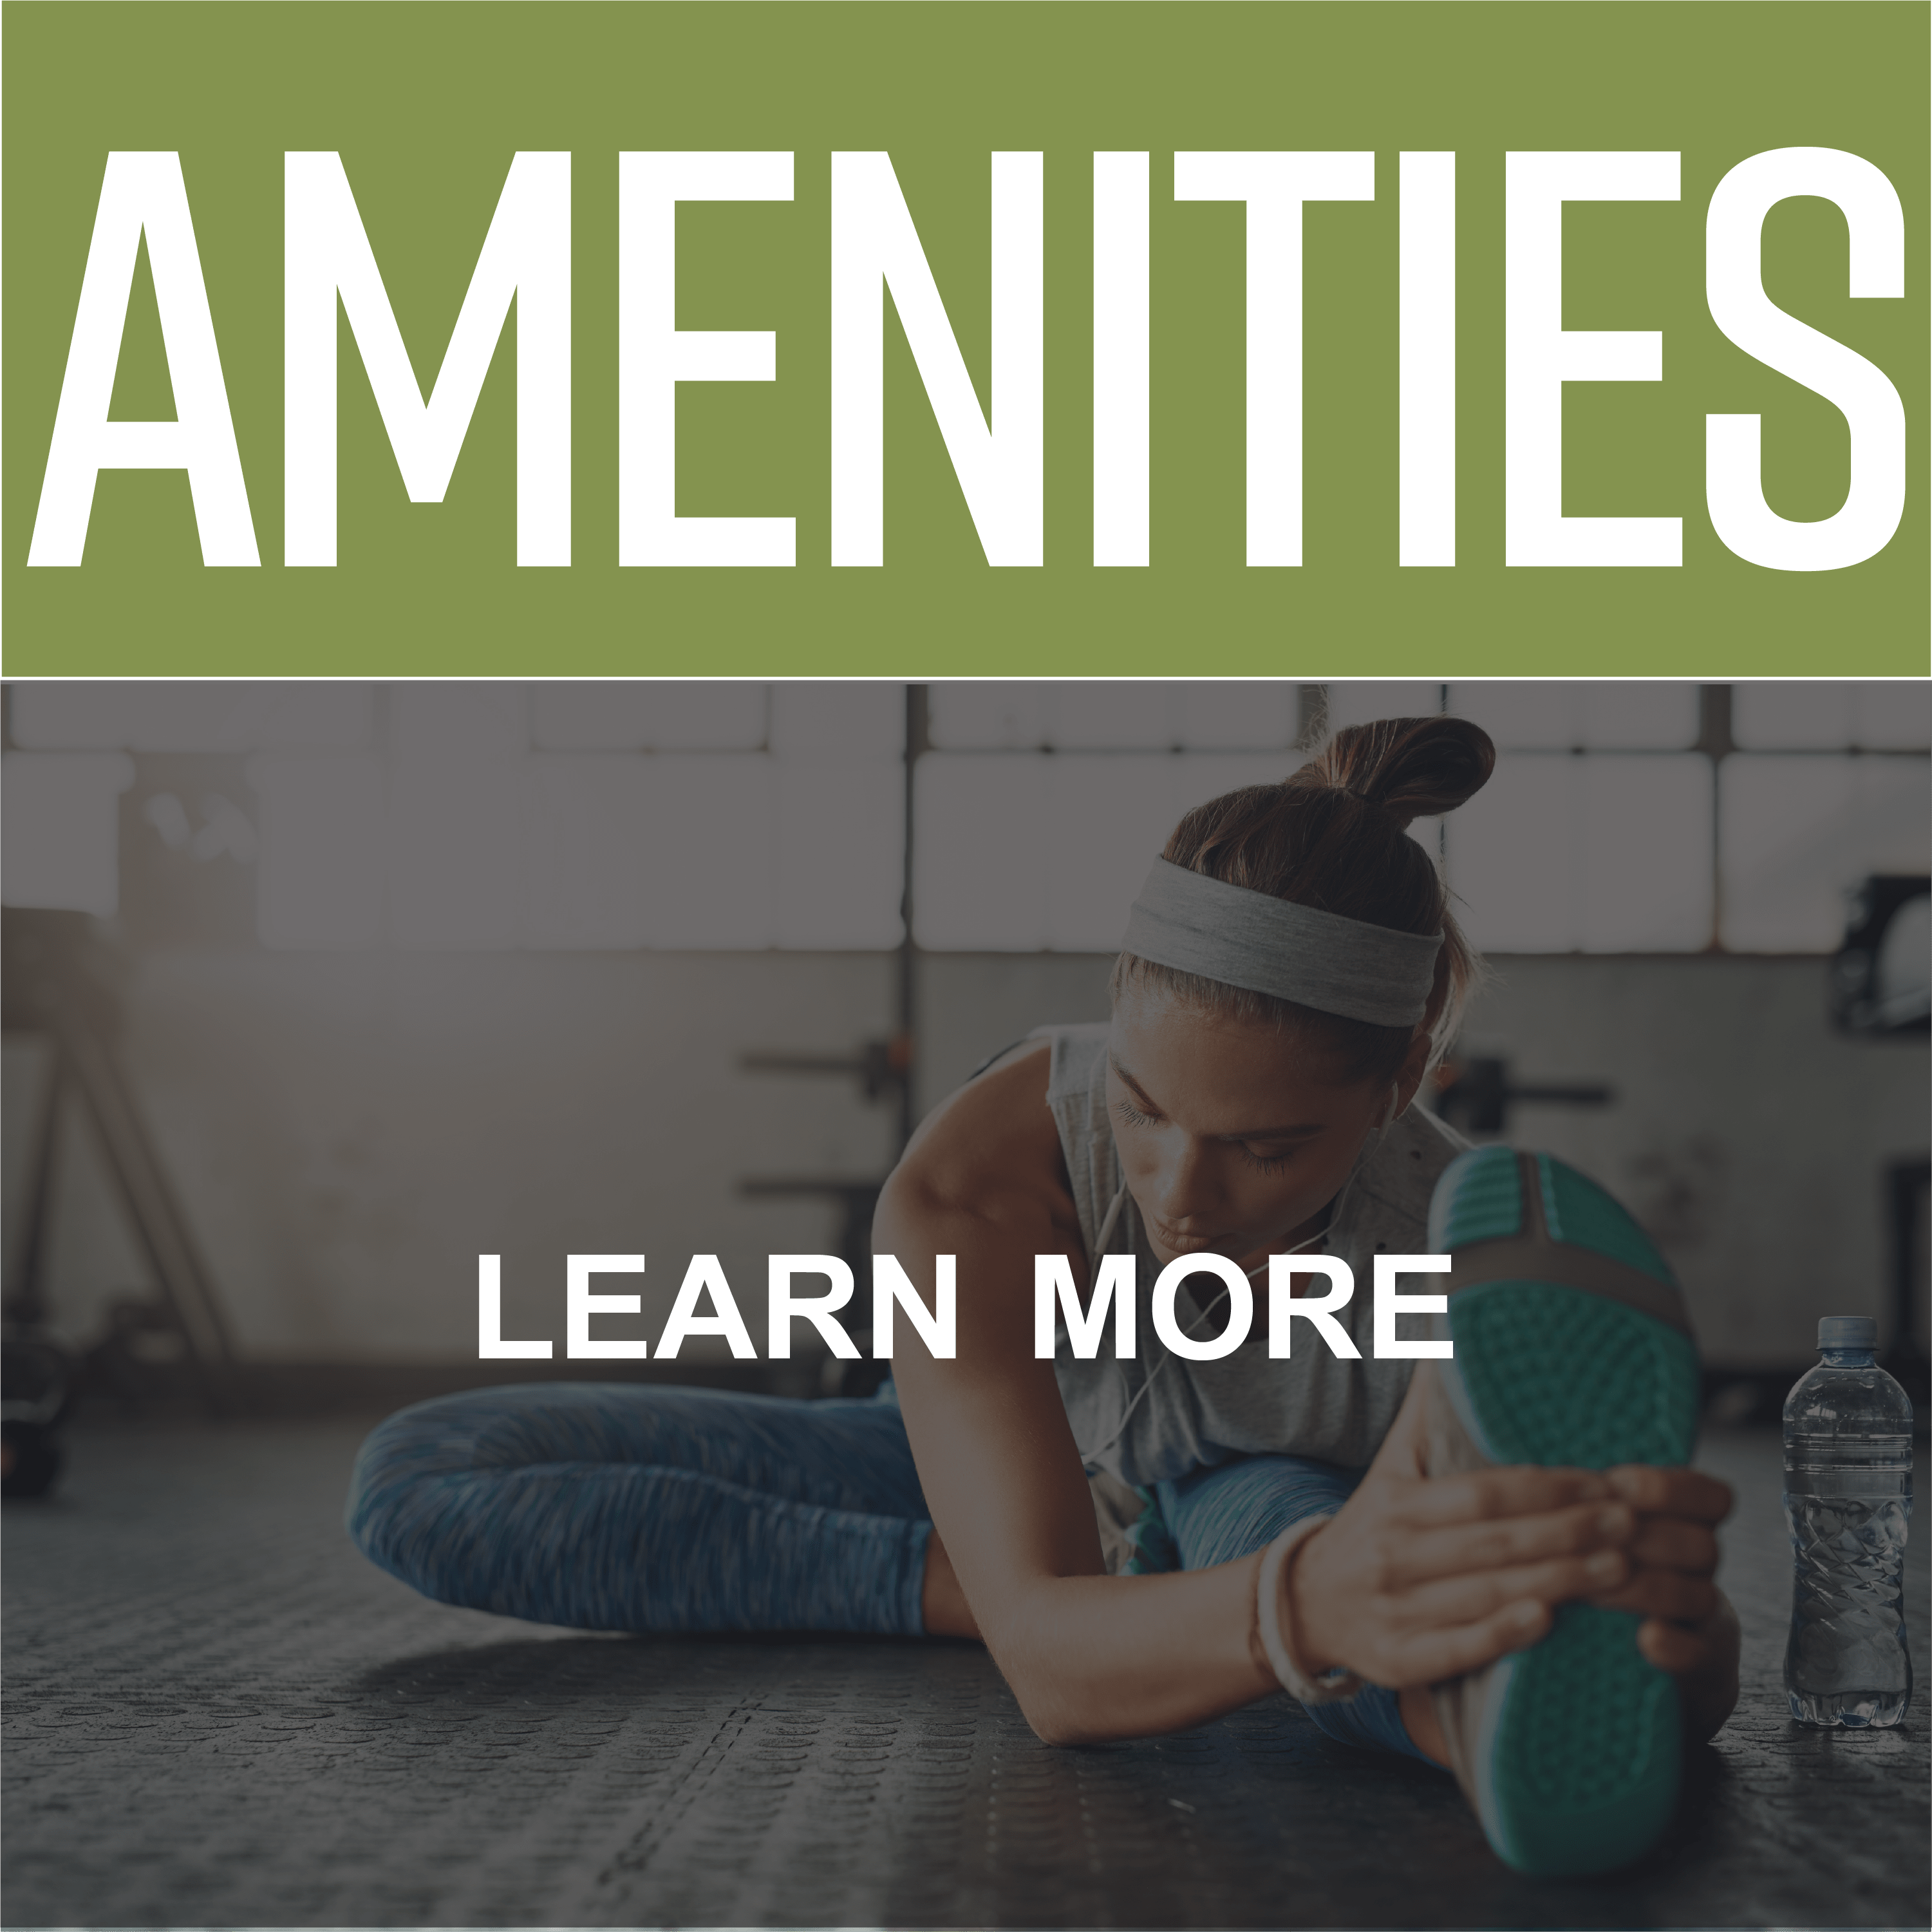 View our amenities at South Block Apartments in Salem, Oregon